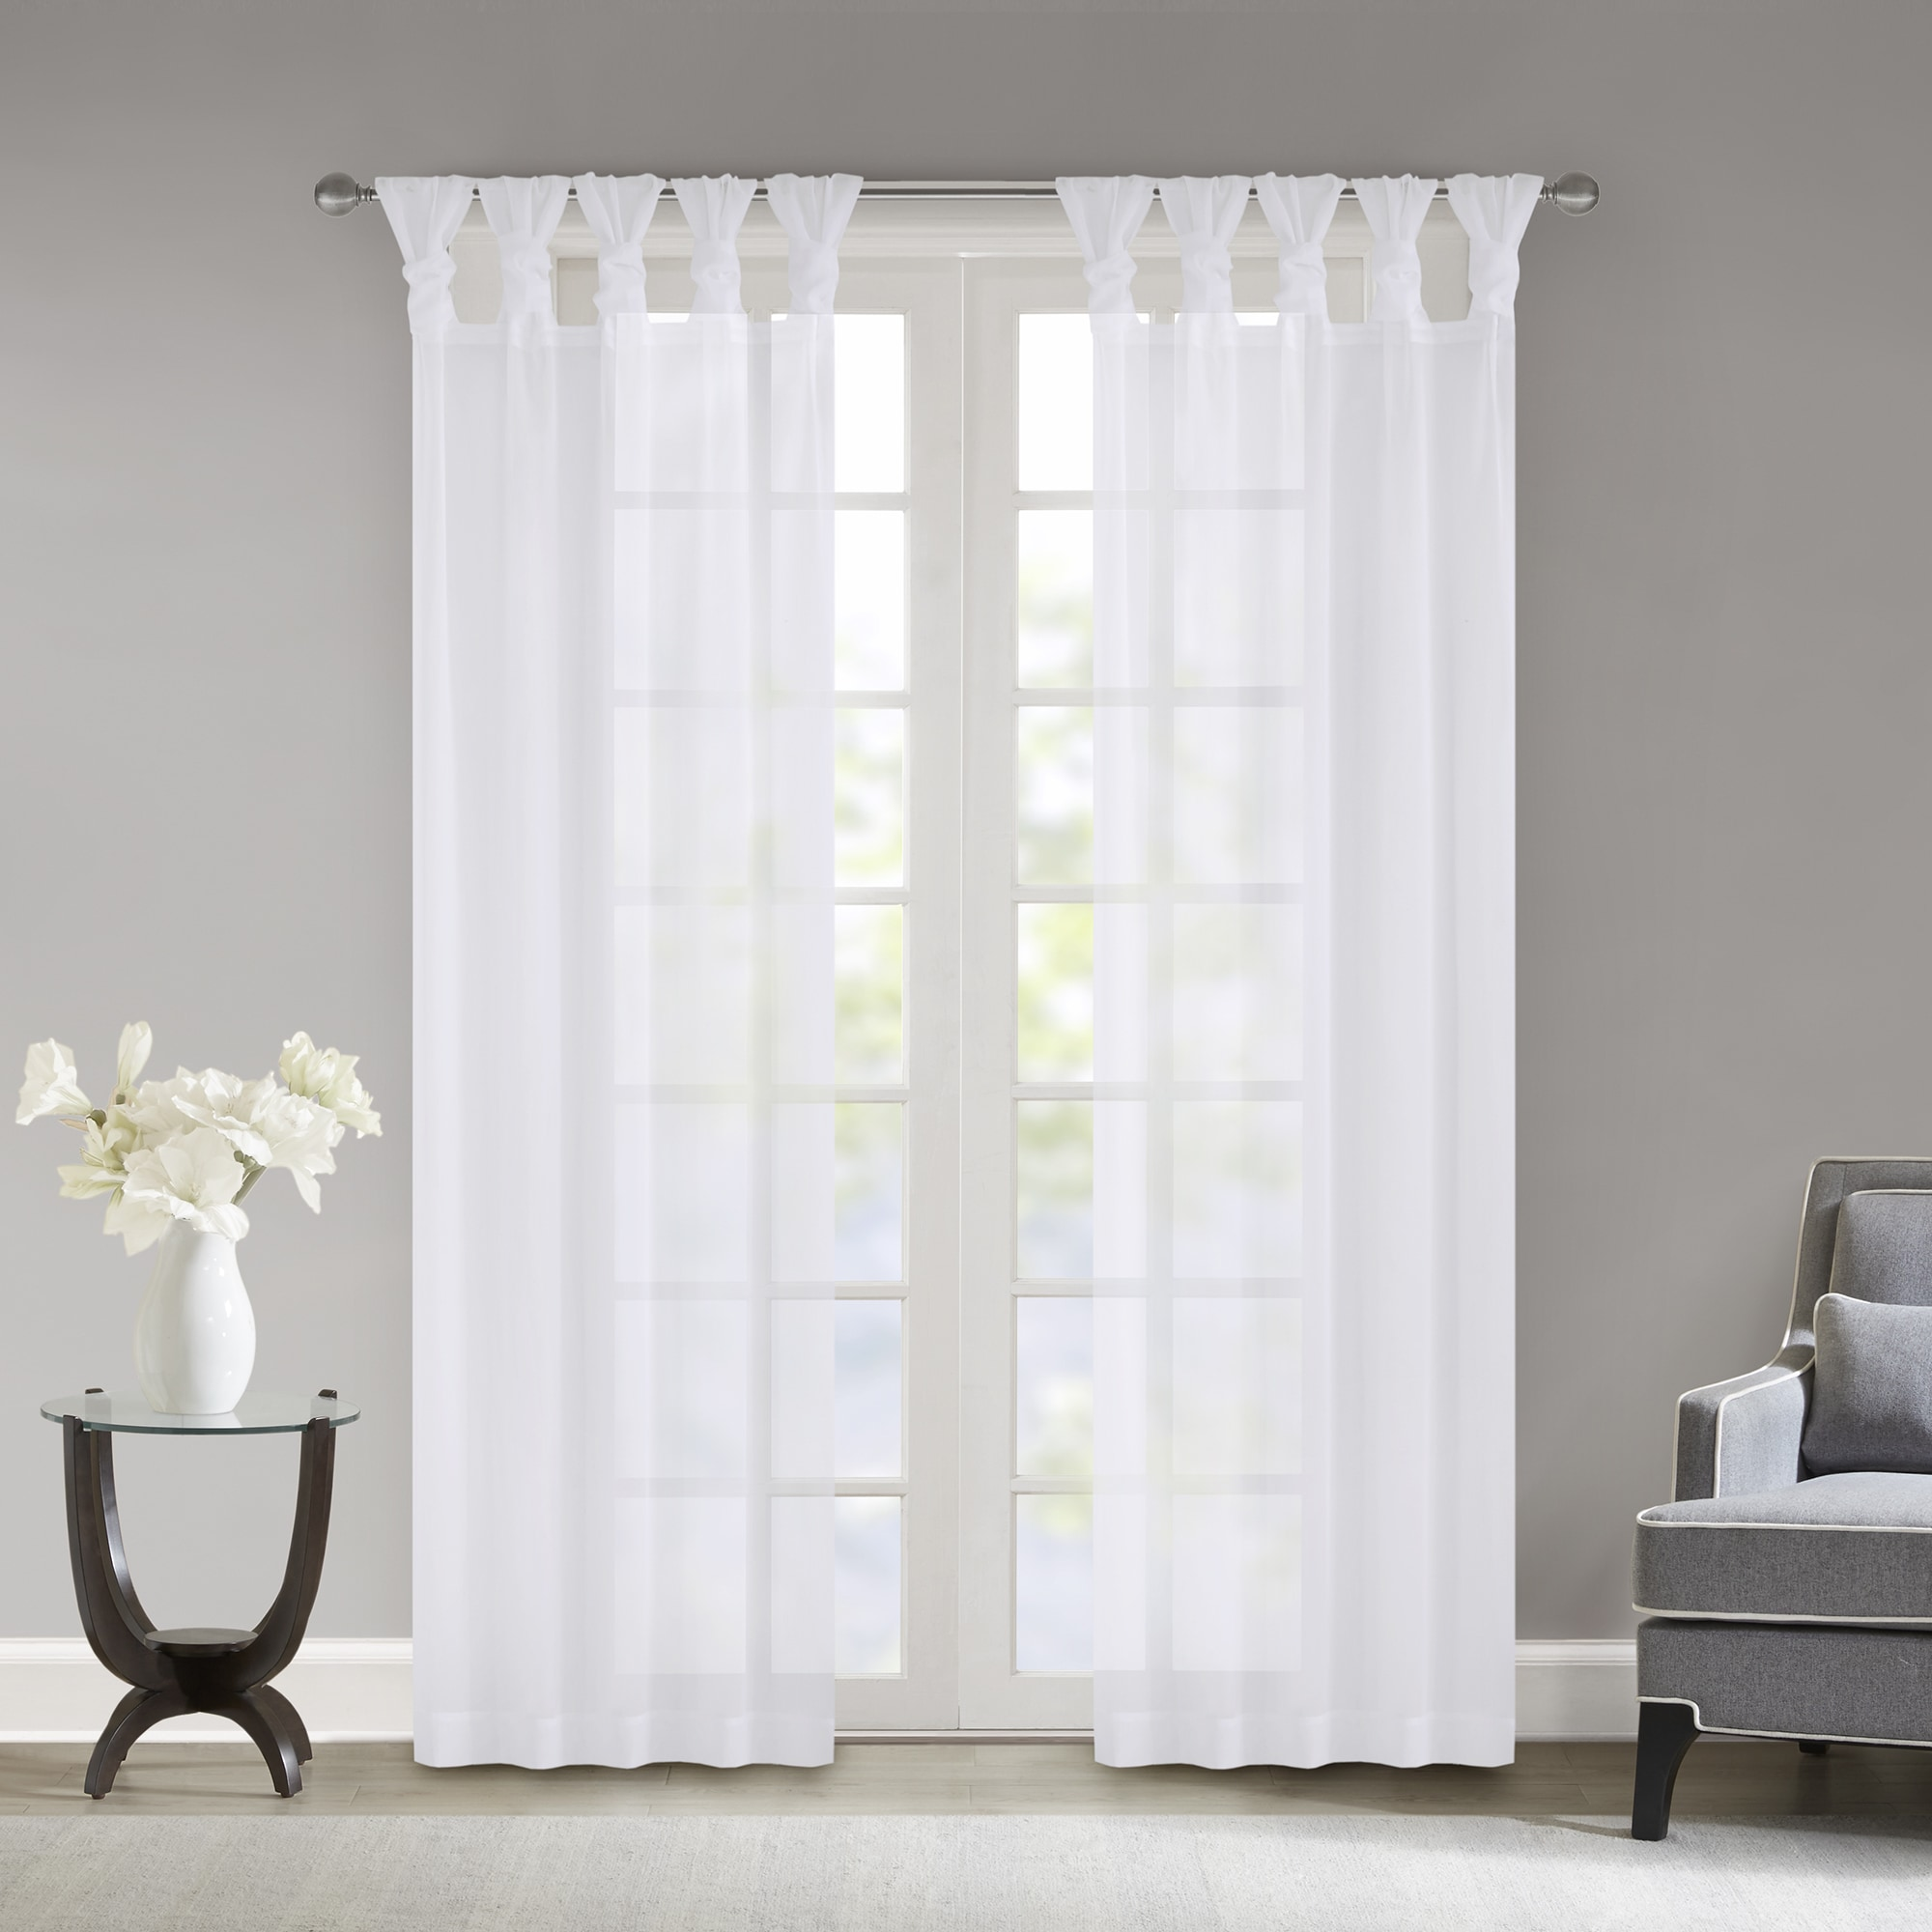 treatment panel crinkle sheer v chantelle curtain light p voile cream window curtains tailored floral